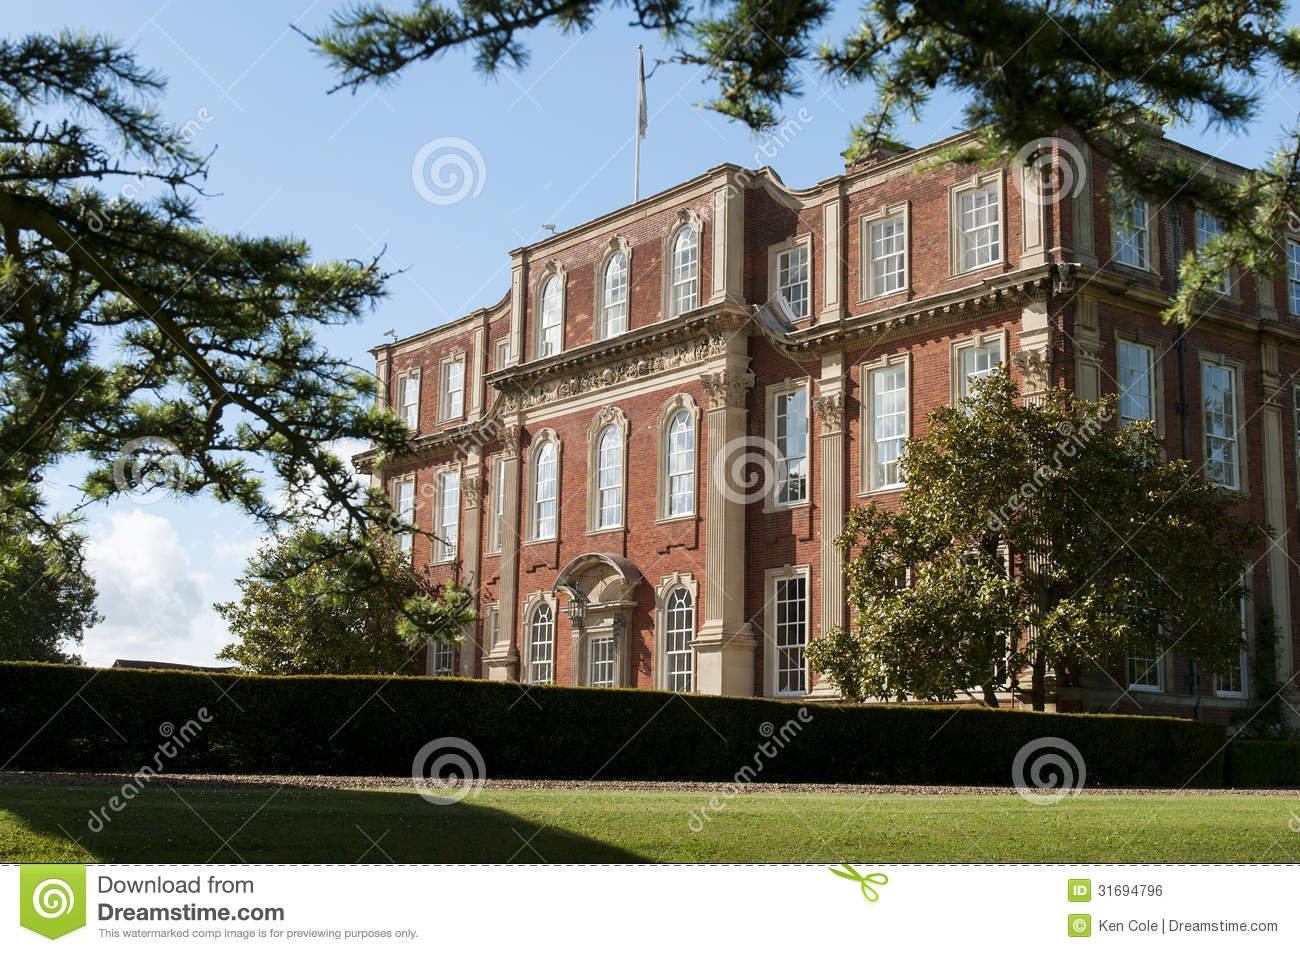 Country mansion Chicheley Hall